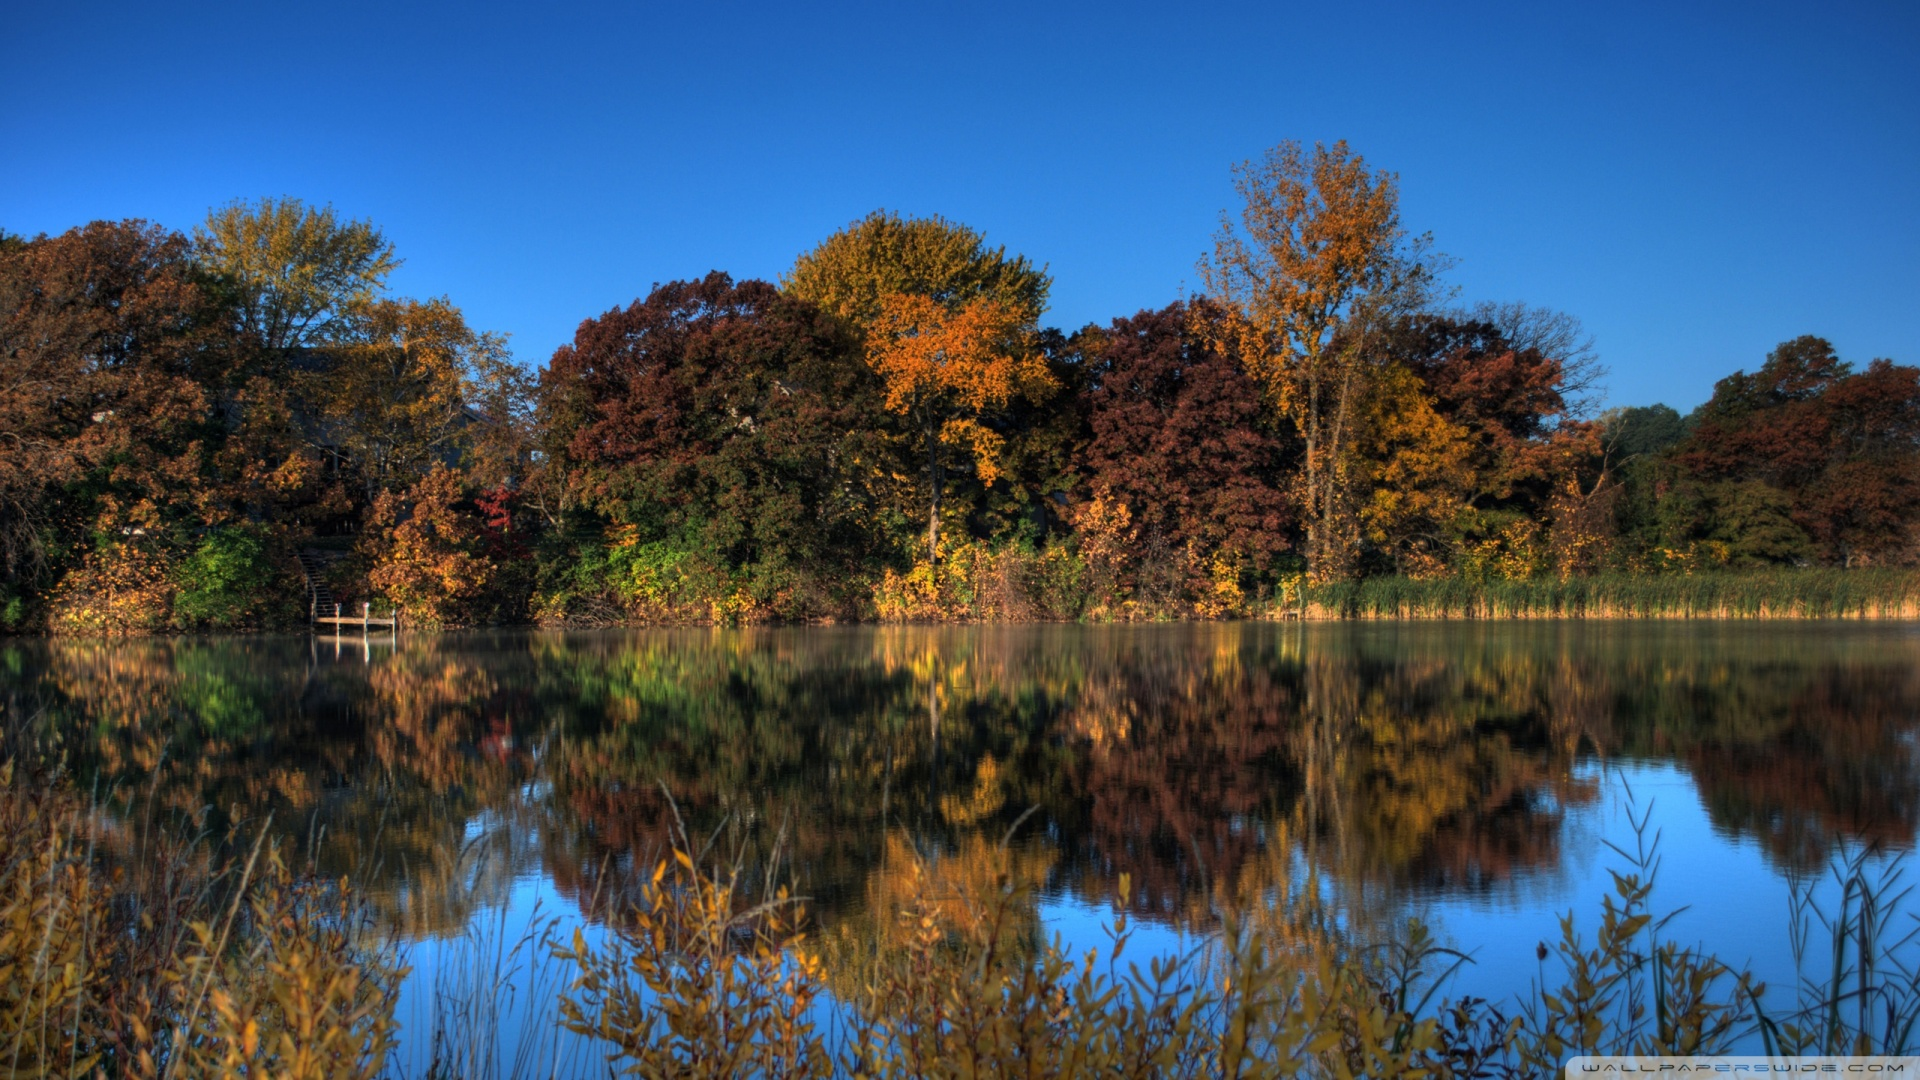 Fall Scene Desktop Wallpaper Autumn Pond Eagan Minnesota 4k Hd Desktop Wallpaper For